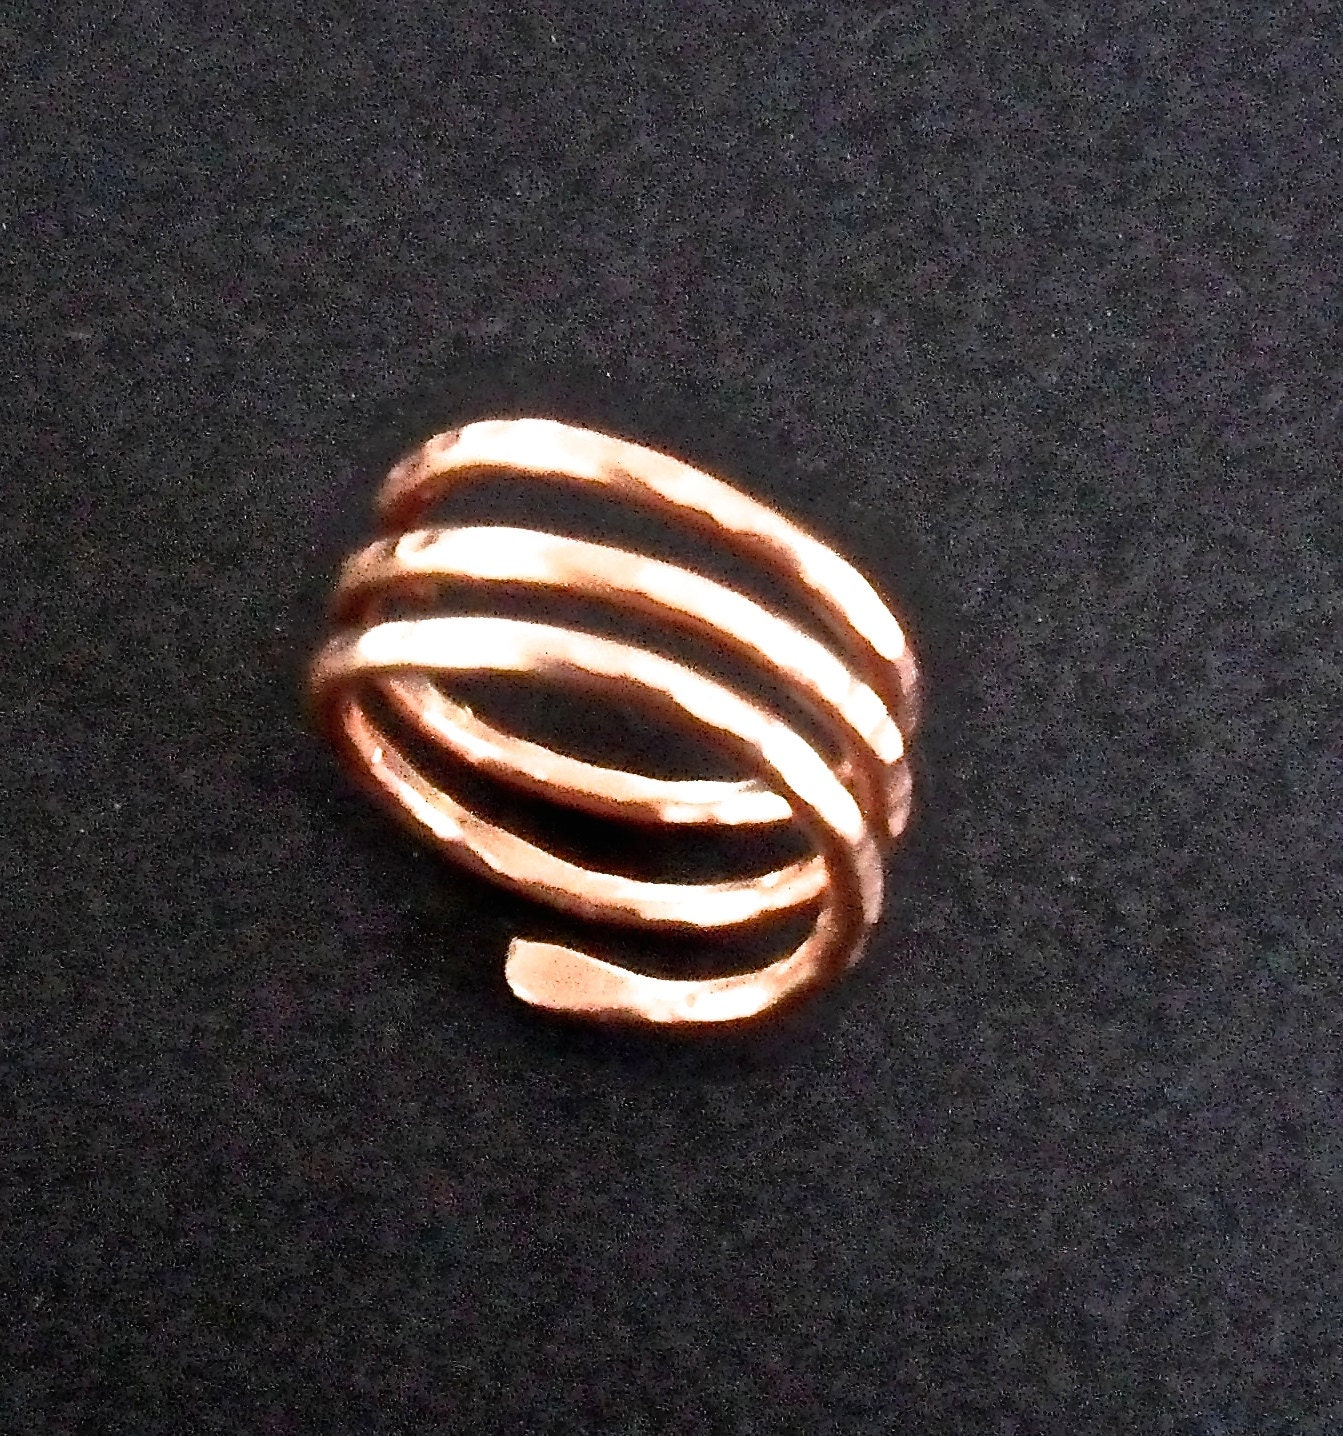 copper ring rustic hammered copper wire jewelry by dawily2